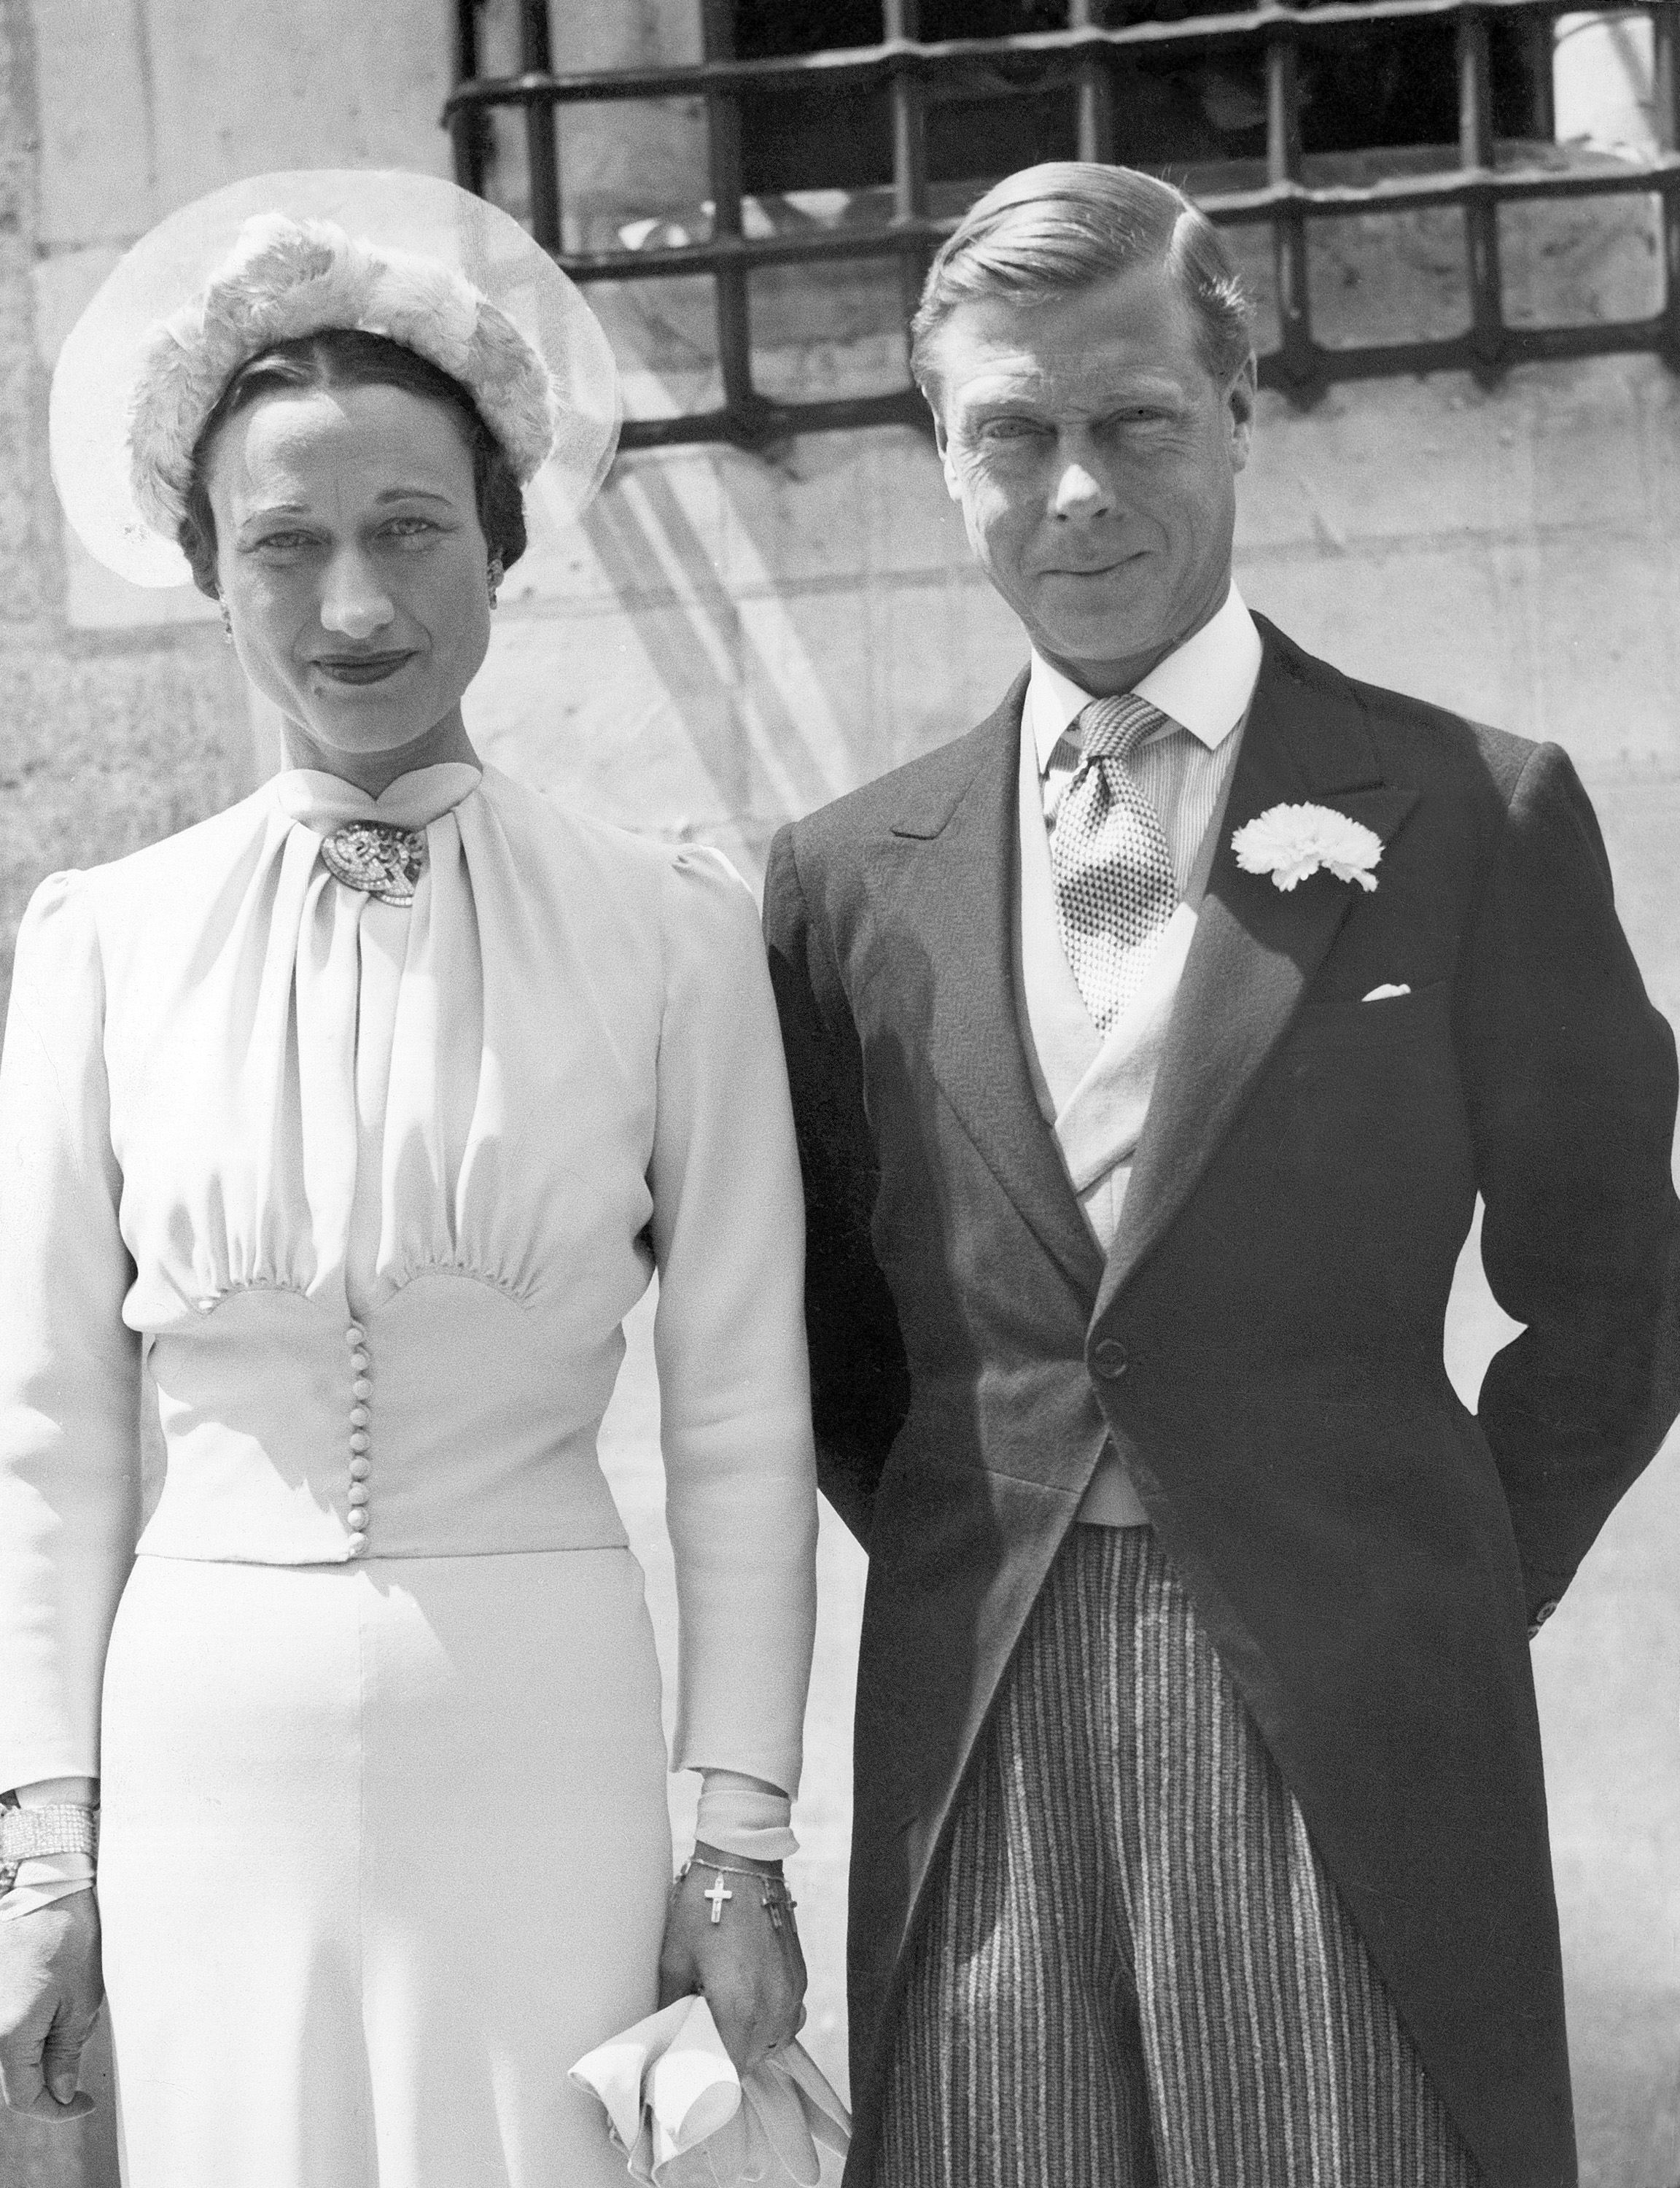 Edward VIII, former King of England, now Duke of Windsor, and his bride, Bessie Wallis Warfield Simpson are seen following the civil and religious ceremonies at the Chateau de Cande, near Tours, France, June 3, 1937. (AP Photo/BIPPA)